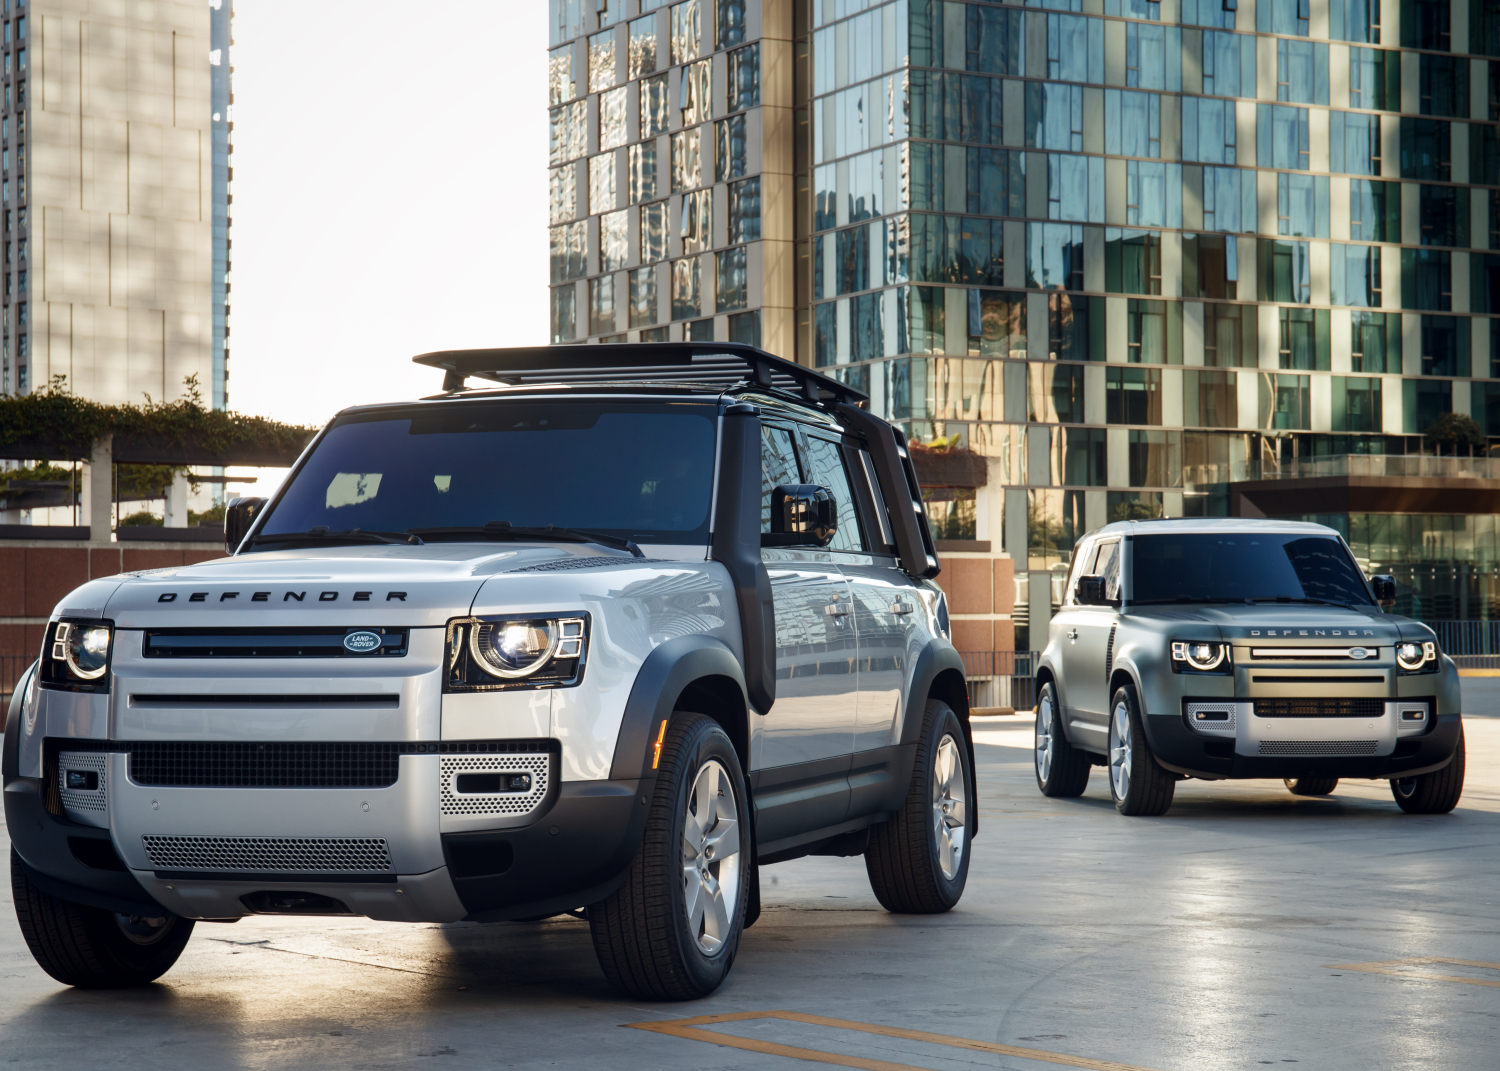 NEW DEFENDER MAKES NORTH AMERICAN DEBUT IN LA